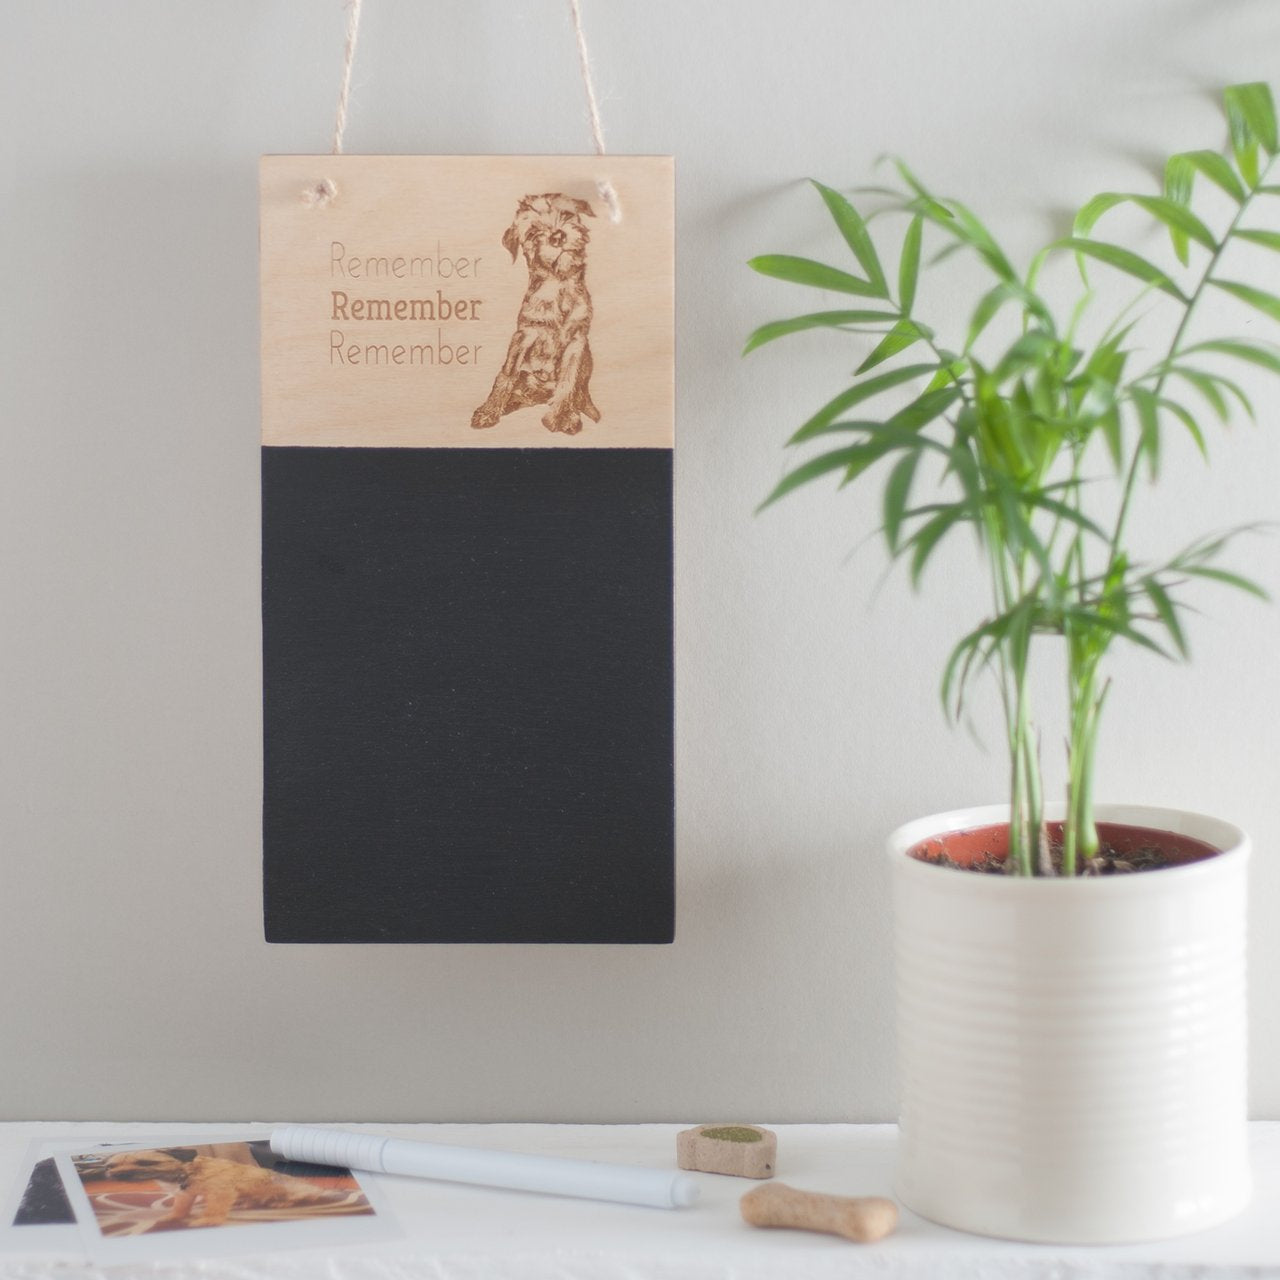 A personalised wooden chalk board with your own photograph and message engraved